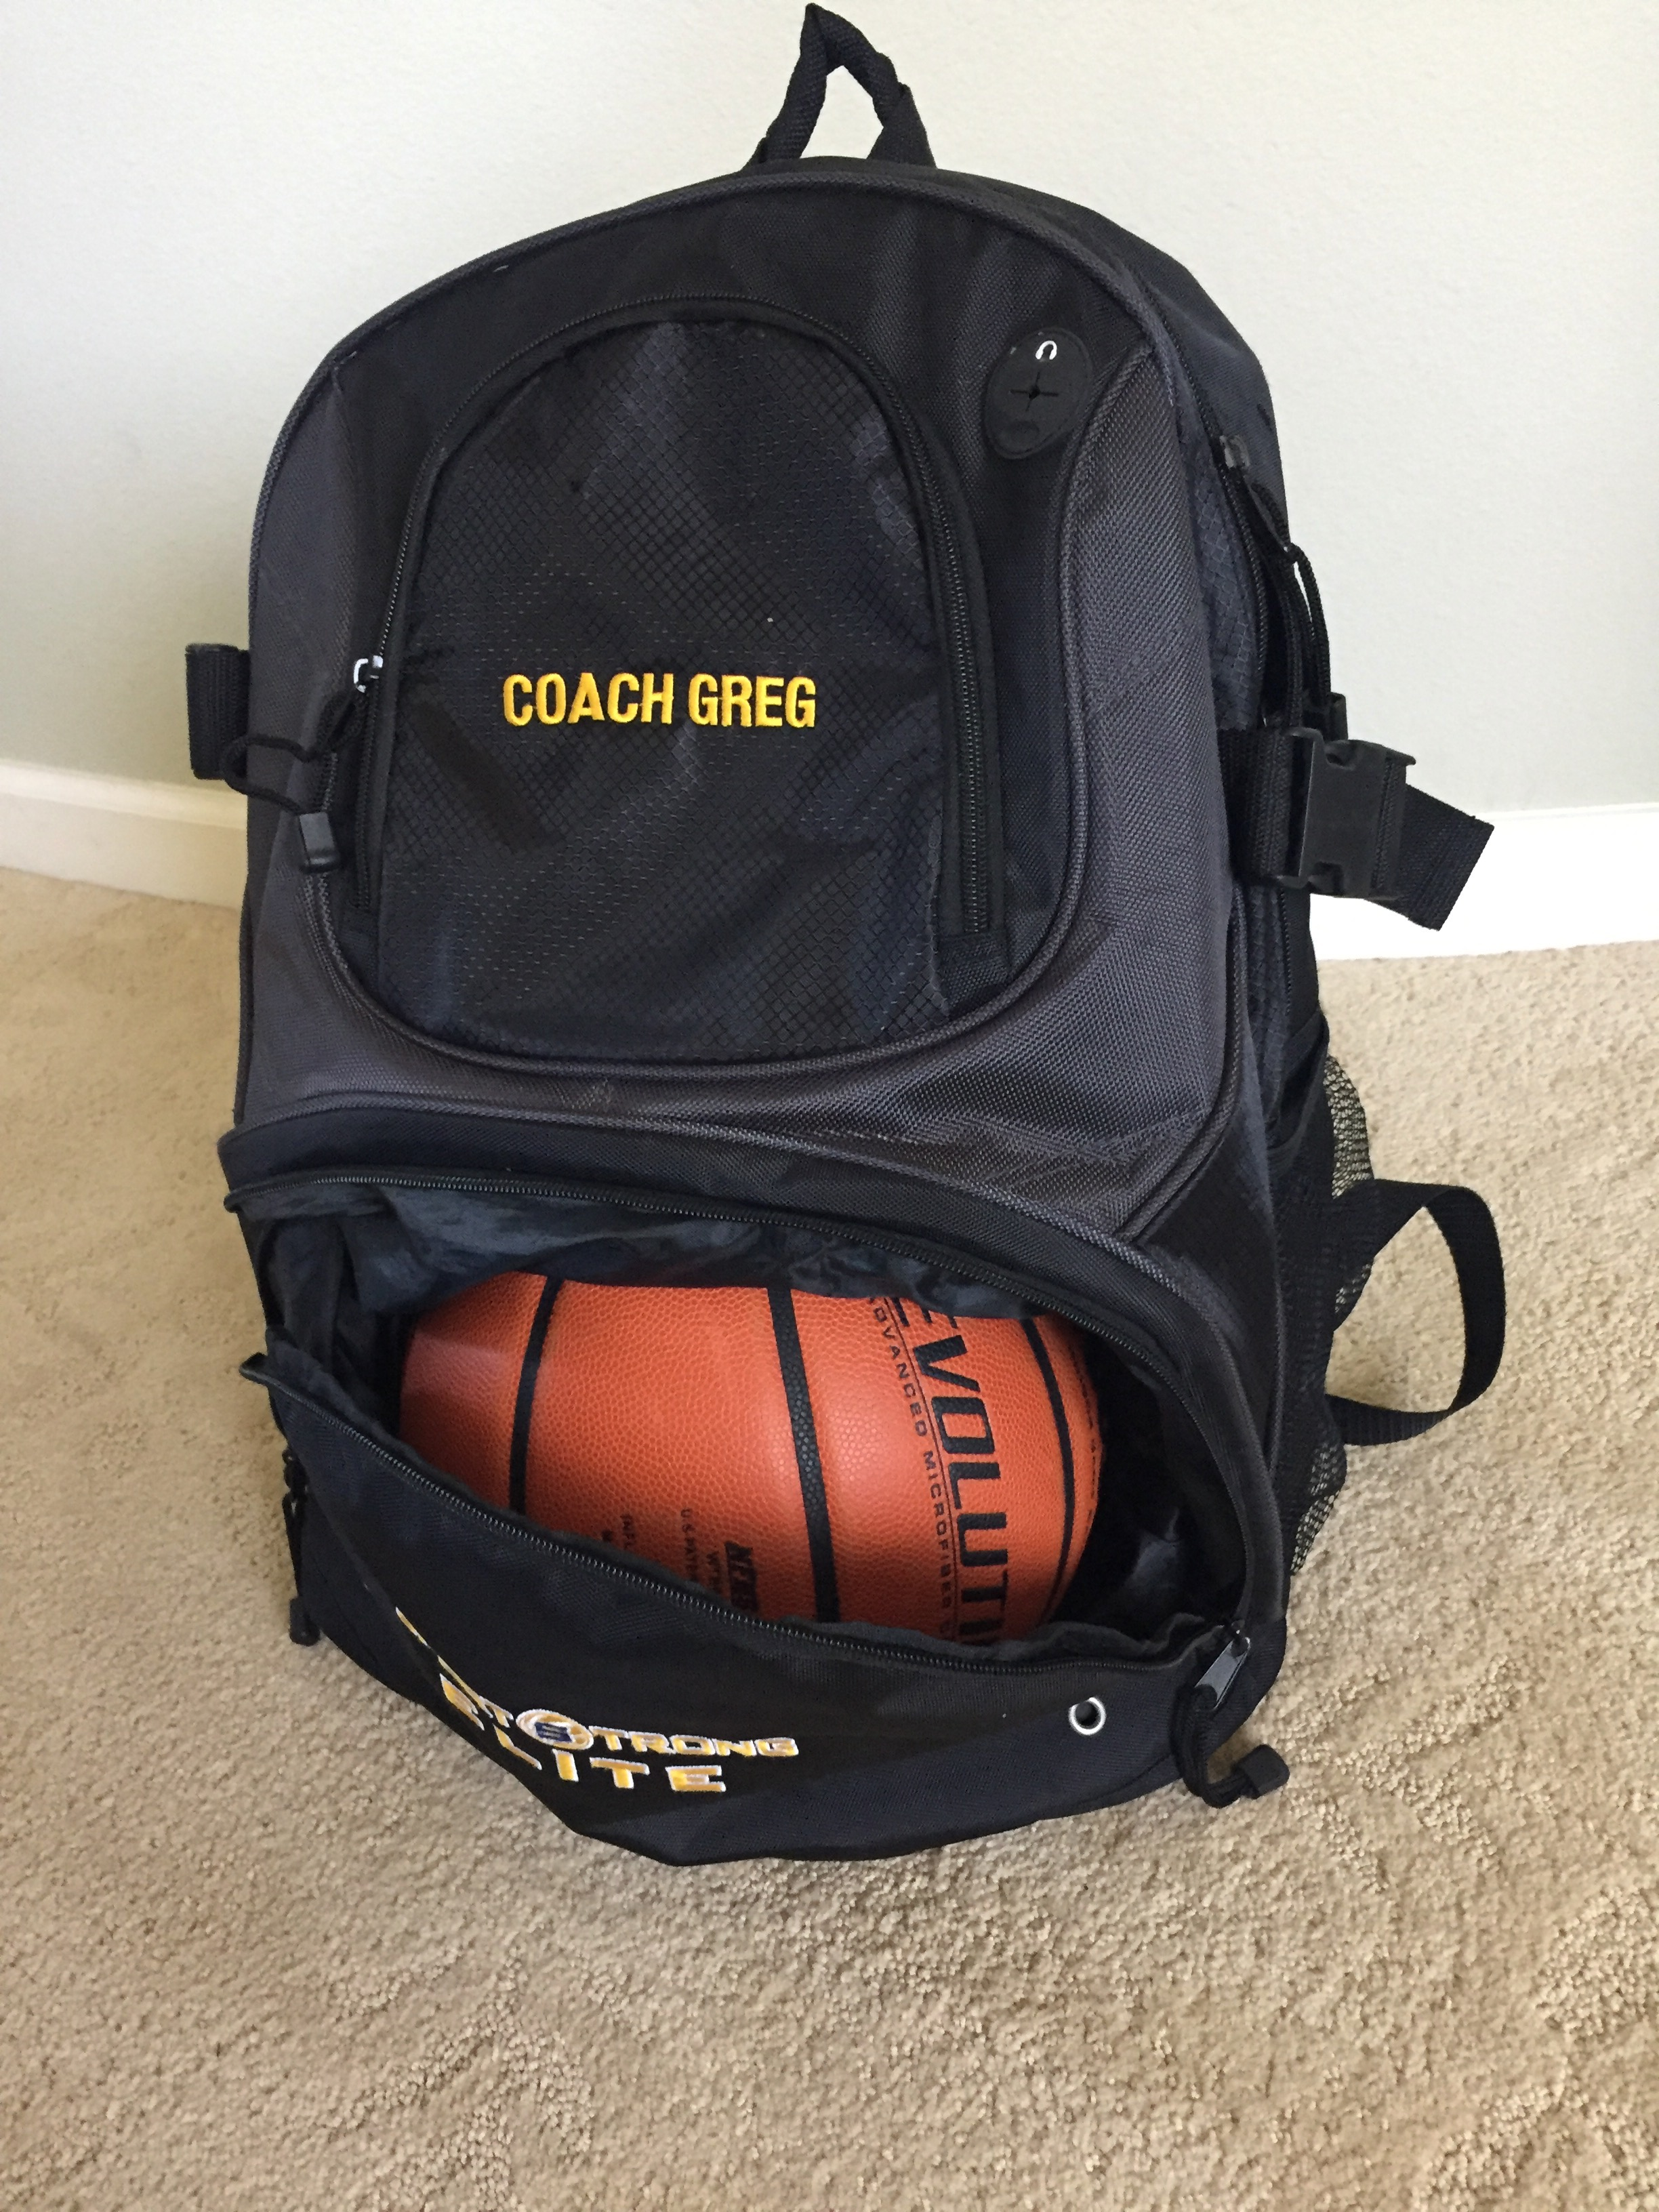 Travel Game Bag